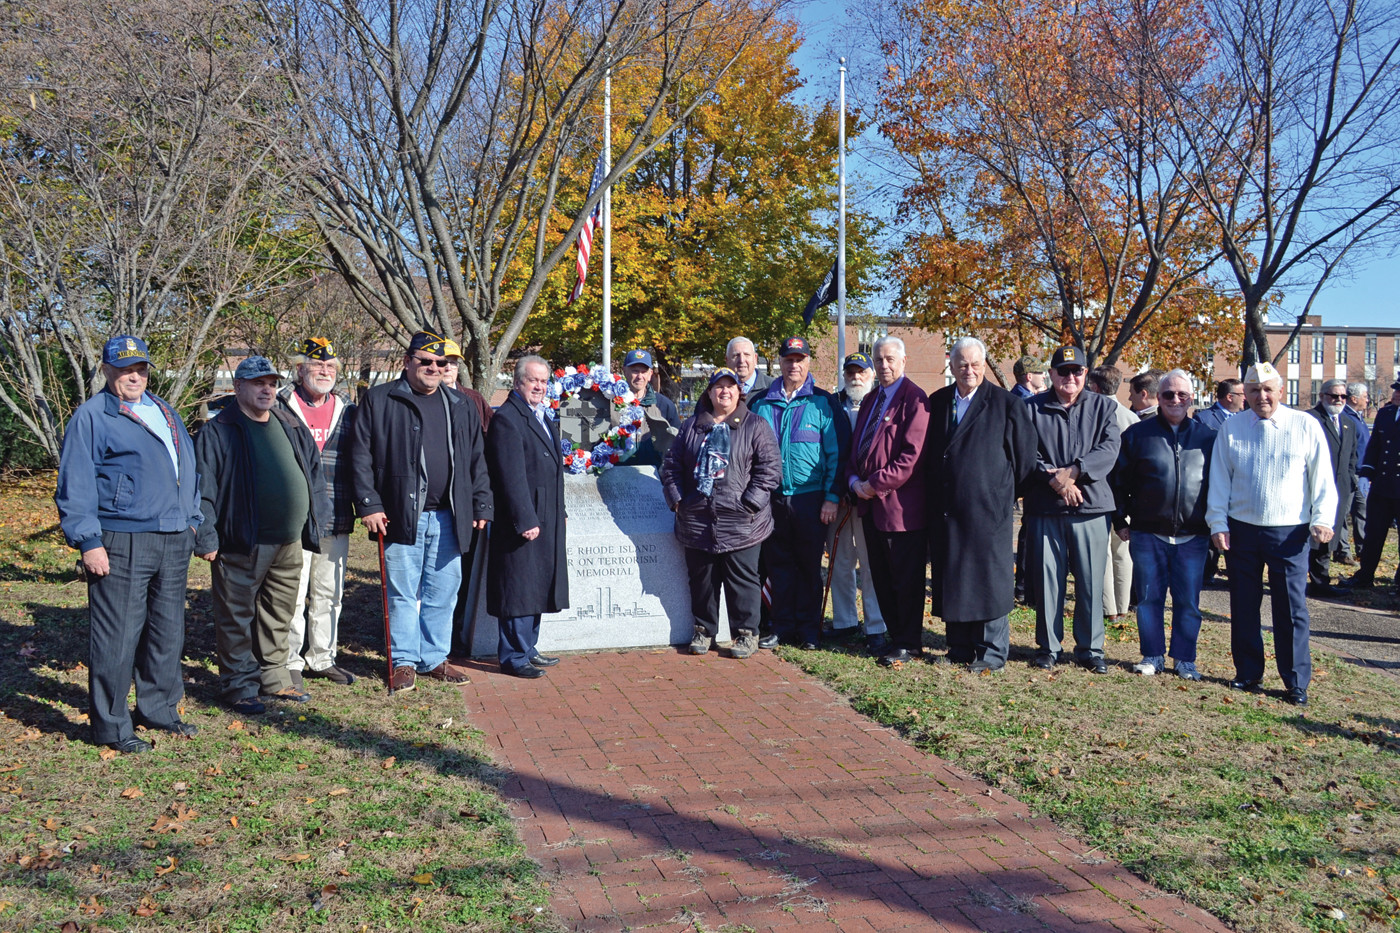 GOOD SHOWING: A large contingent of veterans, including Ward 5 Councilman Ed Ladouceur, Ward 8 Councilman Joseph Gallucci, Representative Camille Vella-Wilkinson, Congressional candidate Salvatore Caiozzo and Historical Society vice president Henry Brown, gathered for the wreath laying.